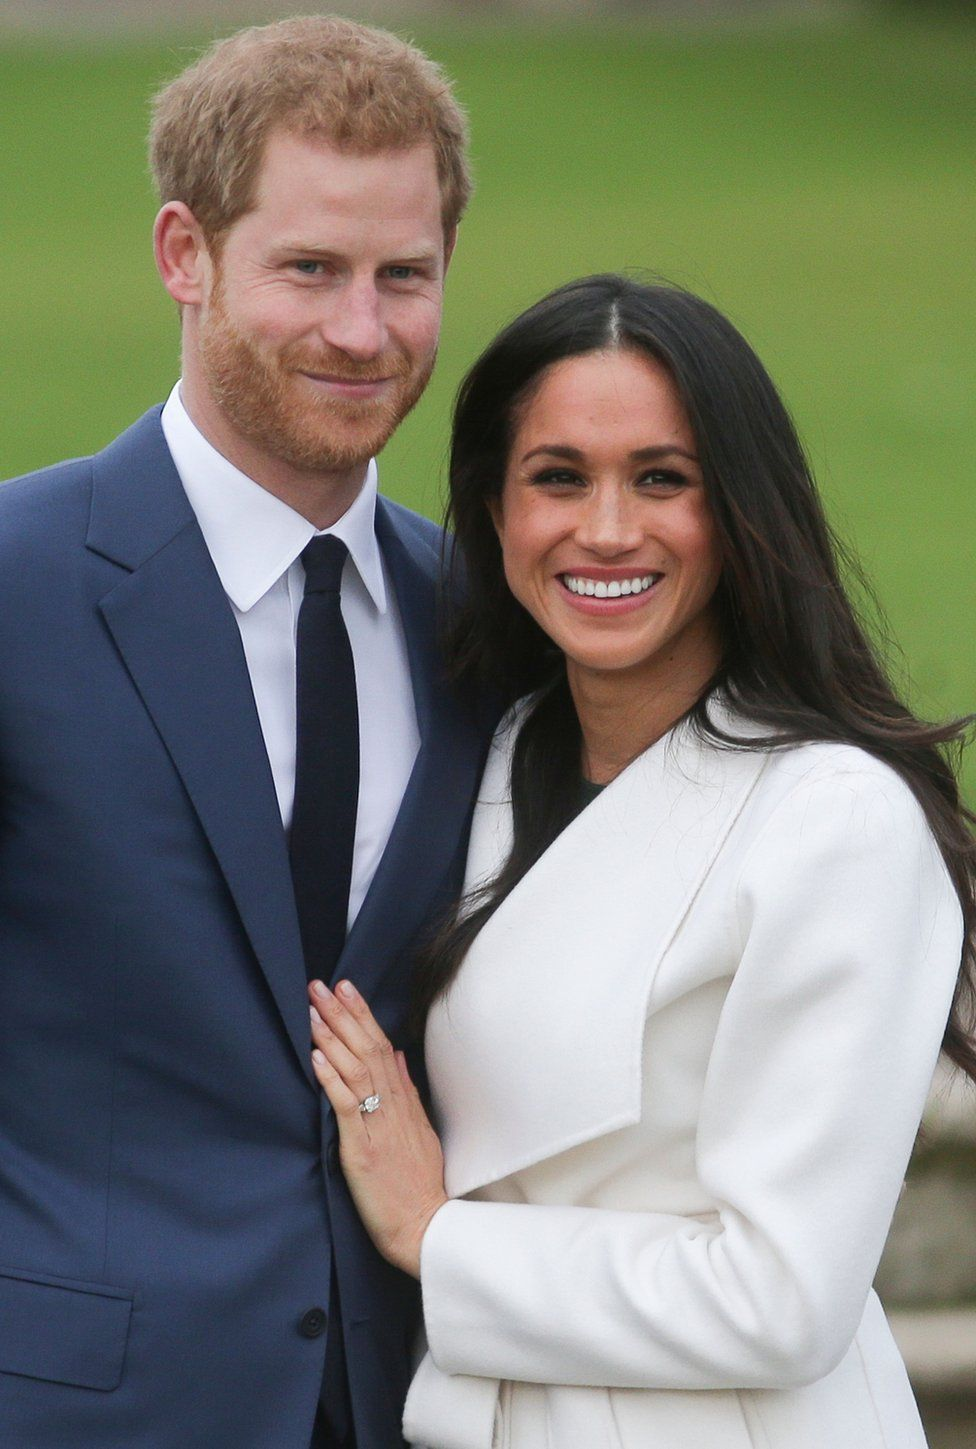 Britain's Prince Harry and his fiance US actress Meghan Markle pose for a photograph in the Sunken Garden at Kensington Palace in west London on 27 November 2017.